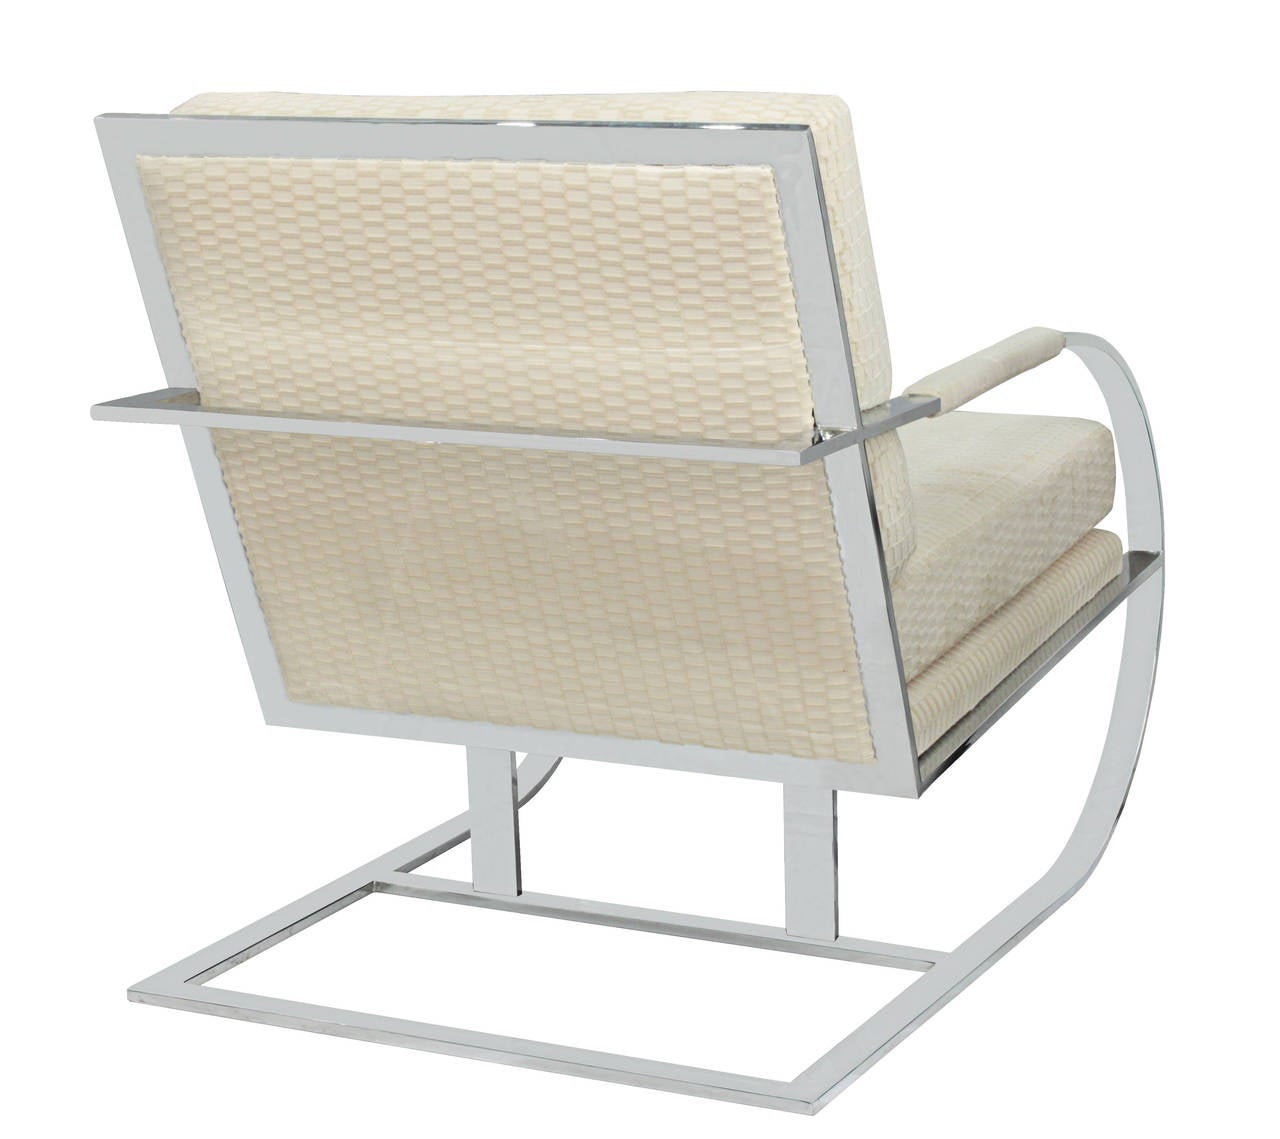 Cantilevered Lounge Chair with Frame in Chrome by Milo Baughman 4